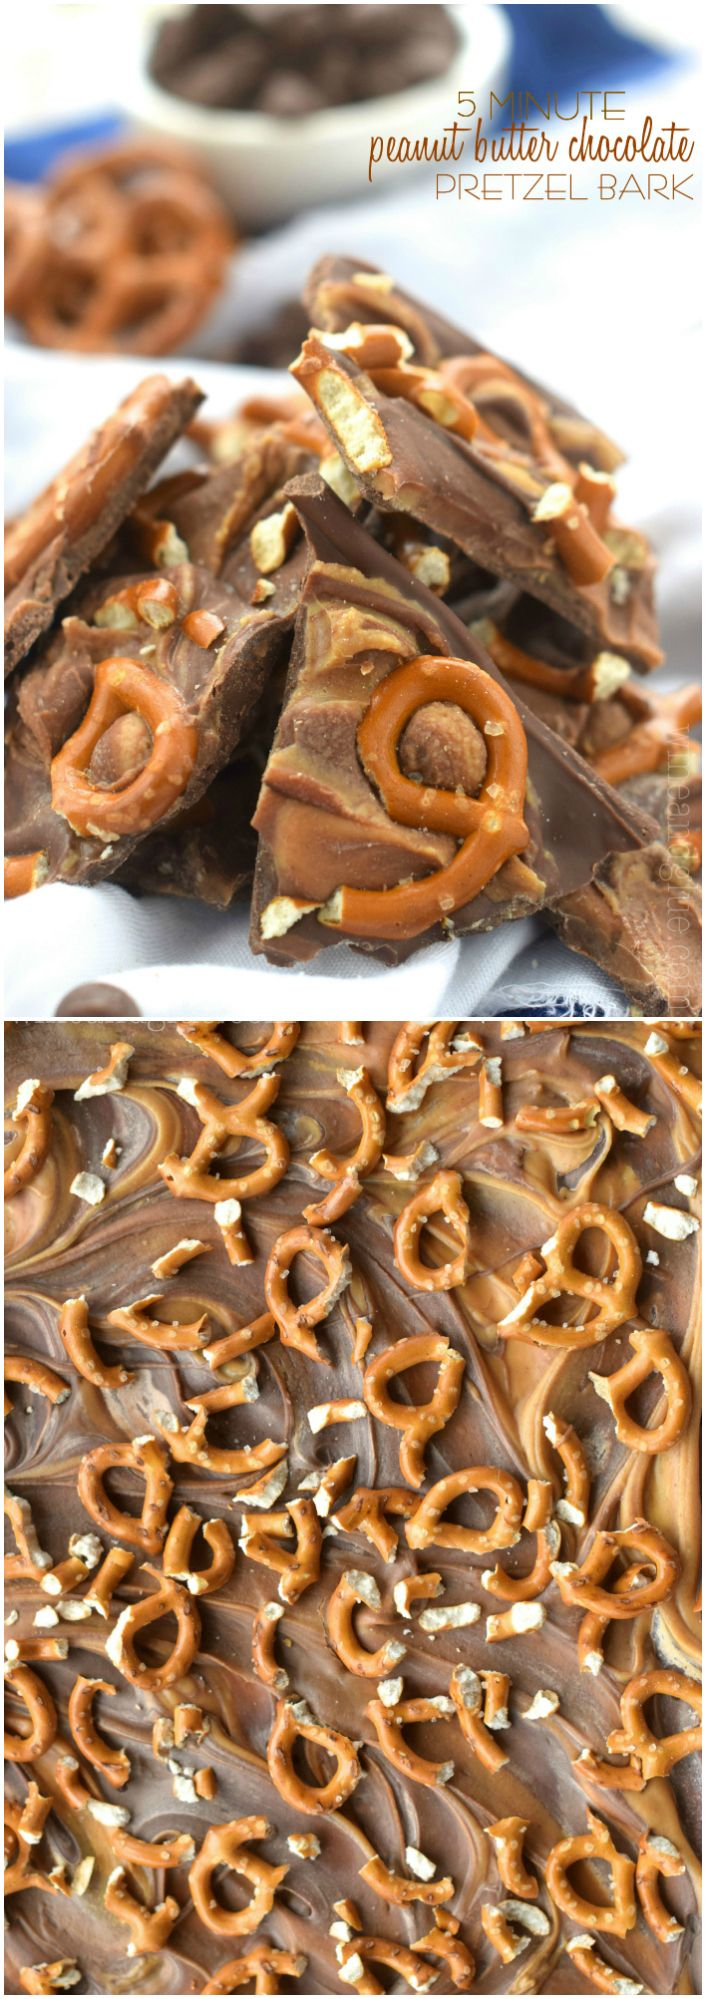 This NO BAKE PEANUT BUTTER CHOCOLATE PRETZEL BARK will only take you FIVE MINUTES to make!